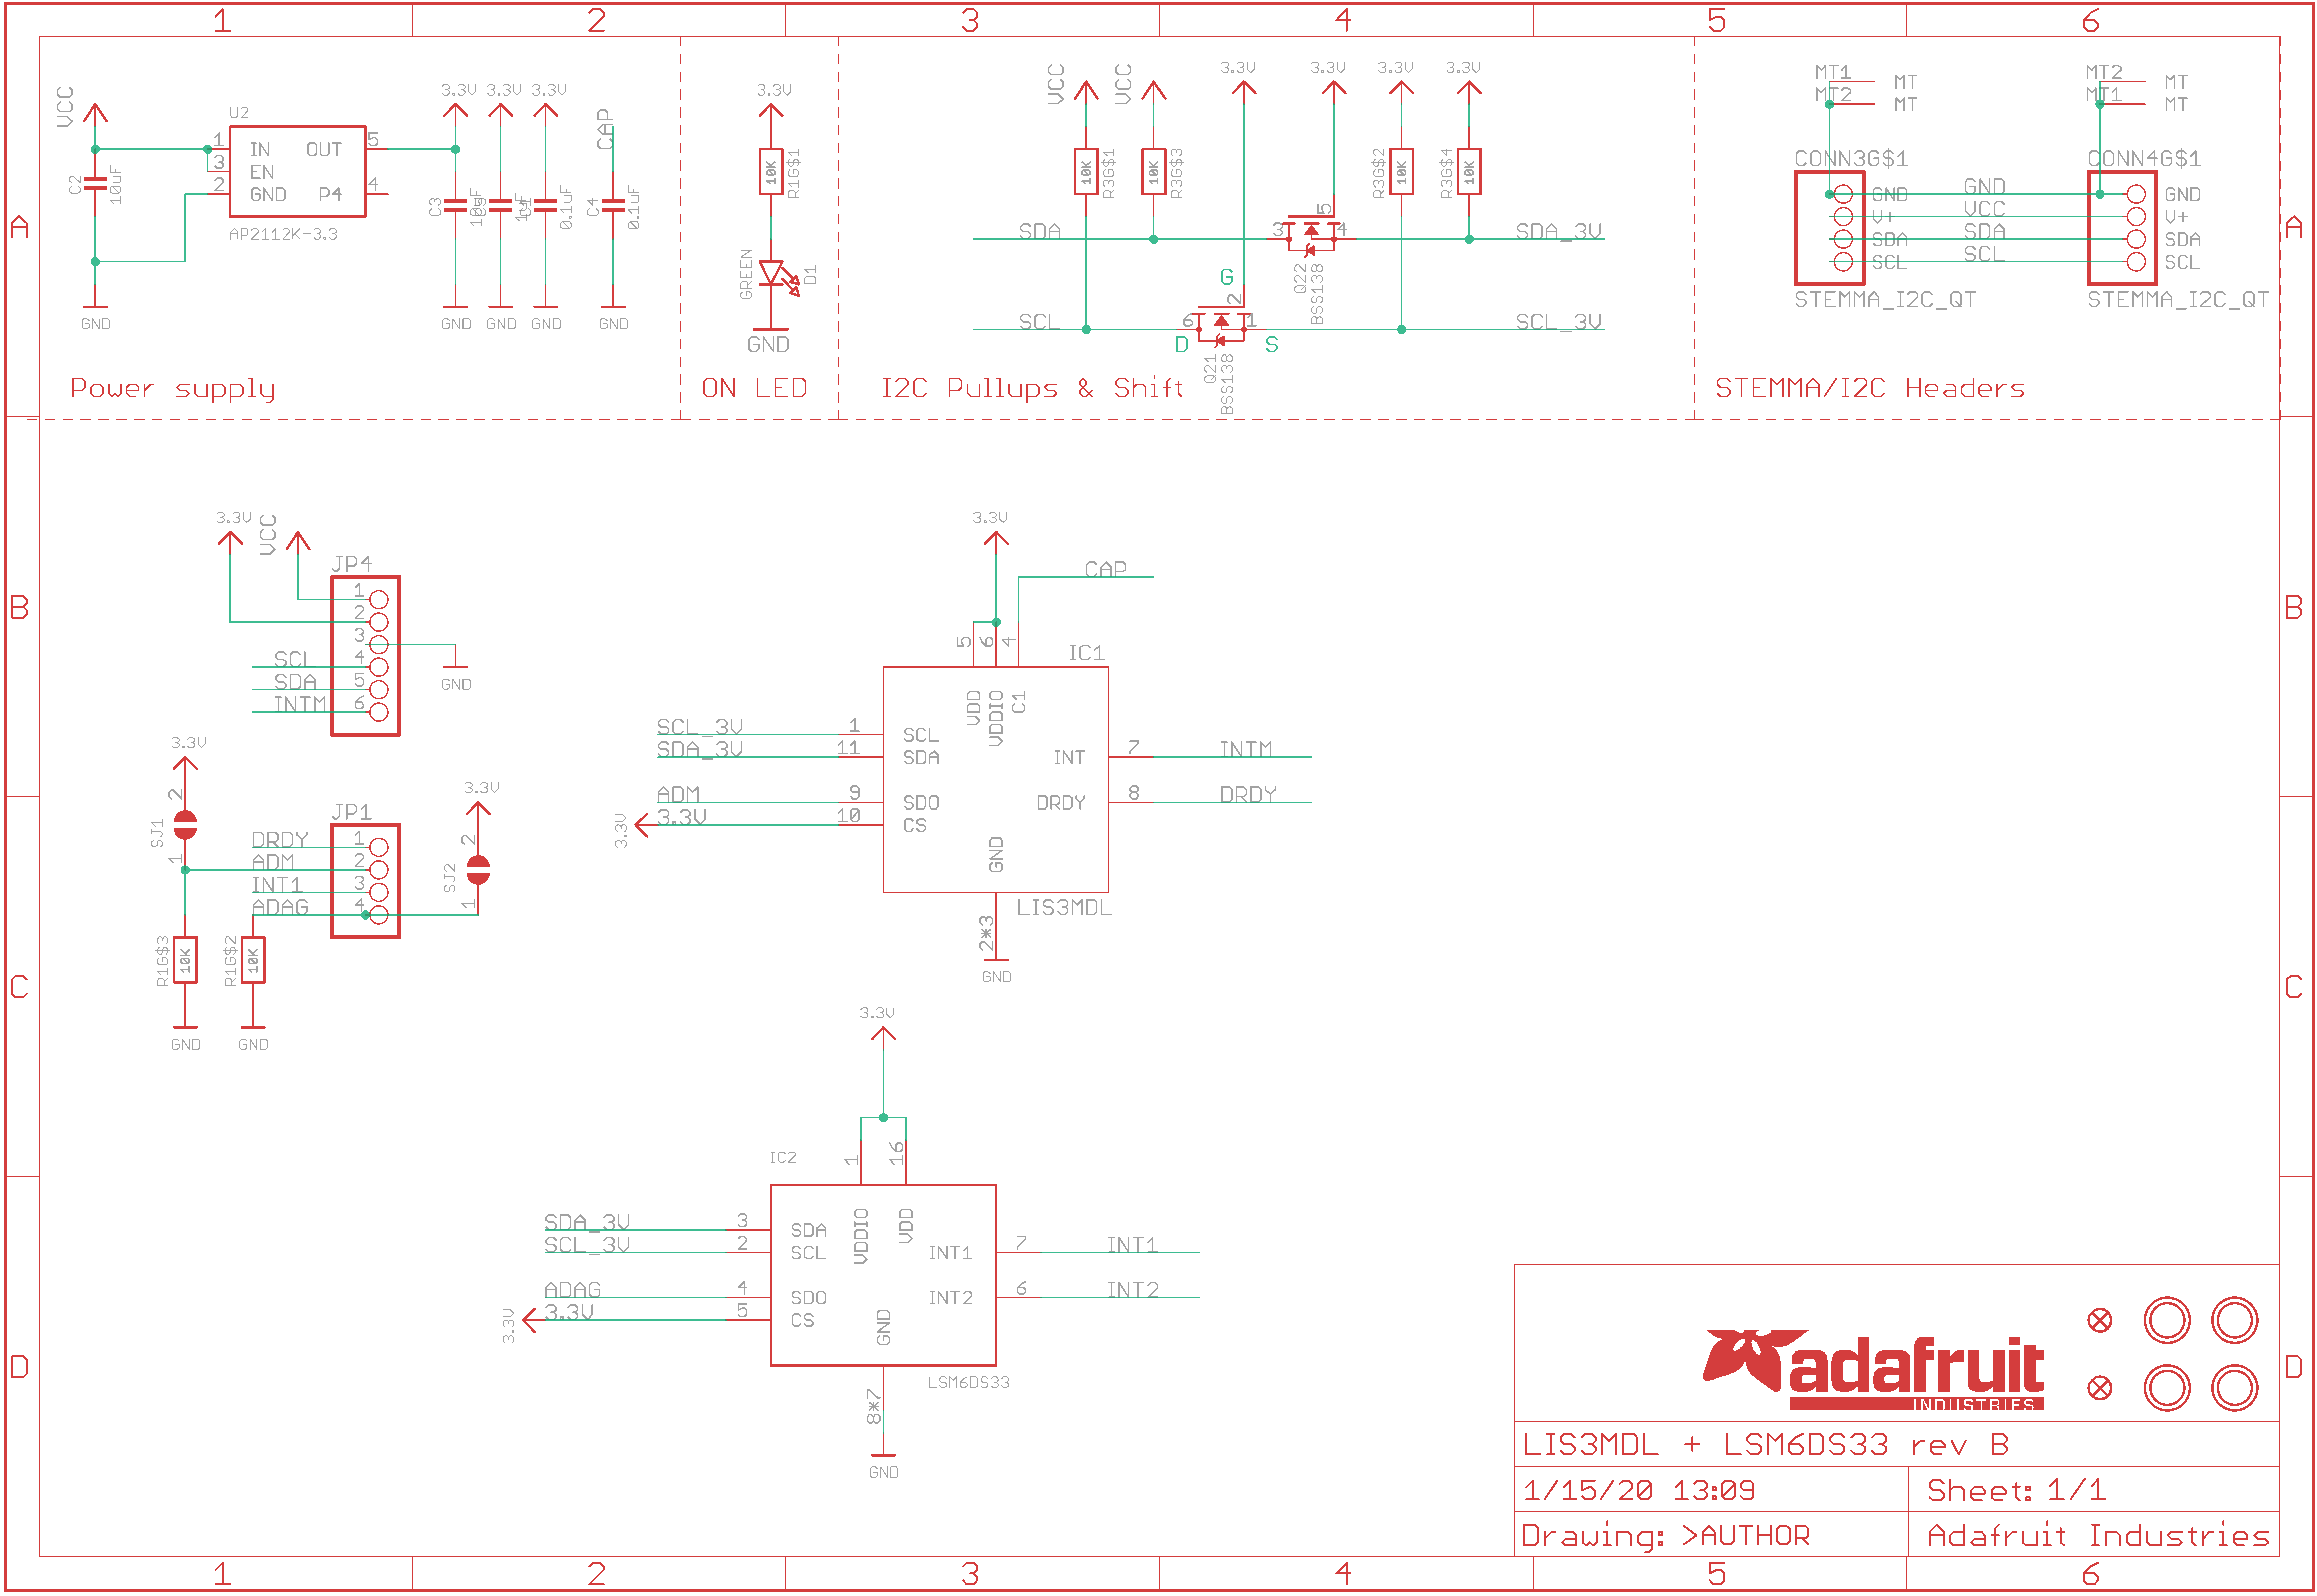 adafruit_products_4485_sch.png